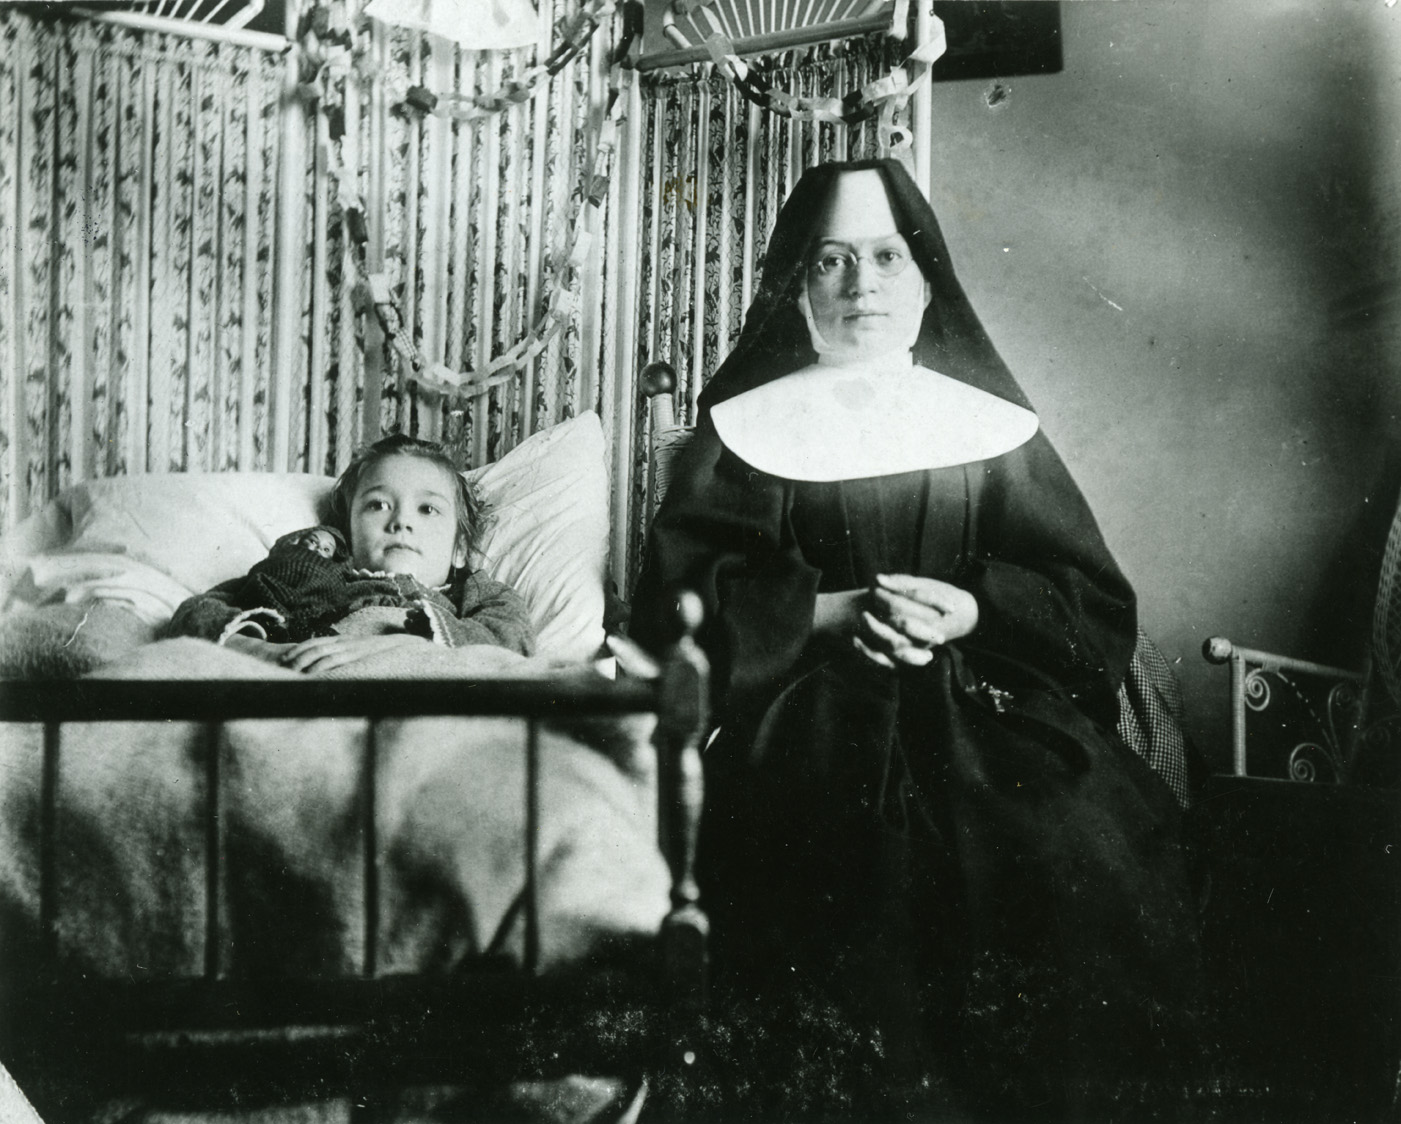 Lucy and Sister Walburger in 1898 at St. Marys Hospital / History Center of Olmsted County